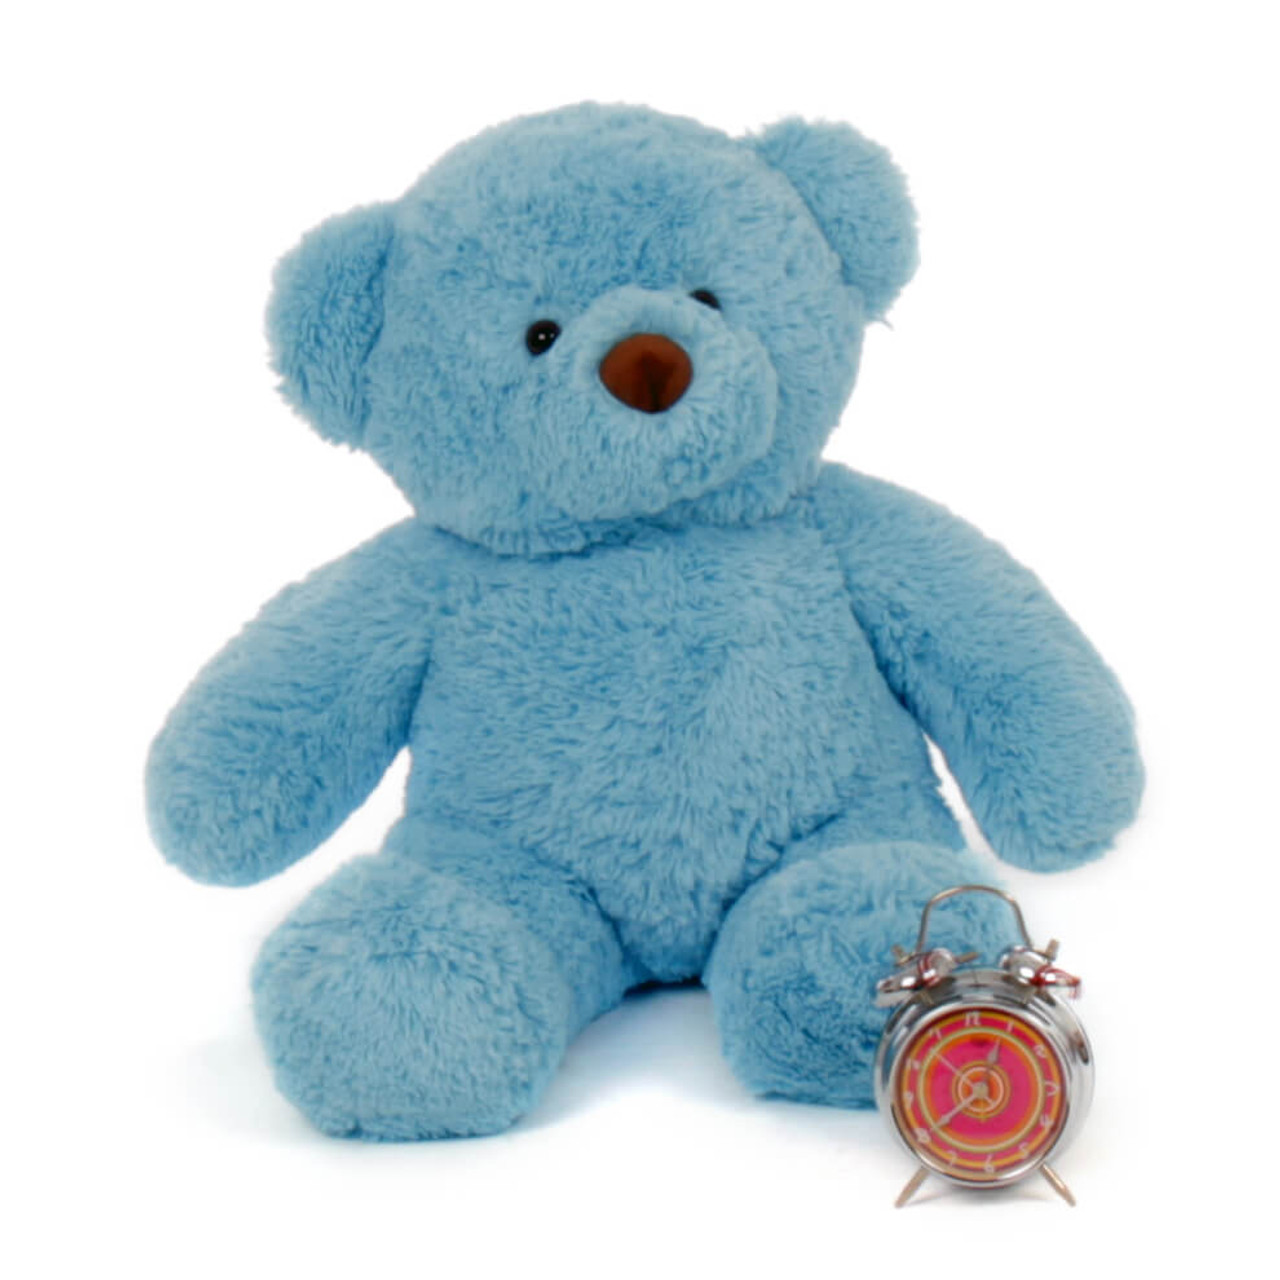 2.5 ft Big Blue Teddy Bear Sammy Chubs from Giant Teddy